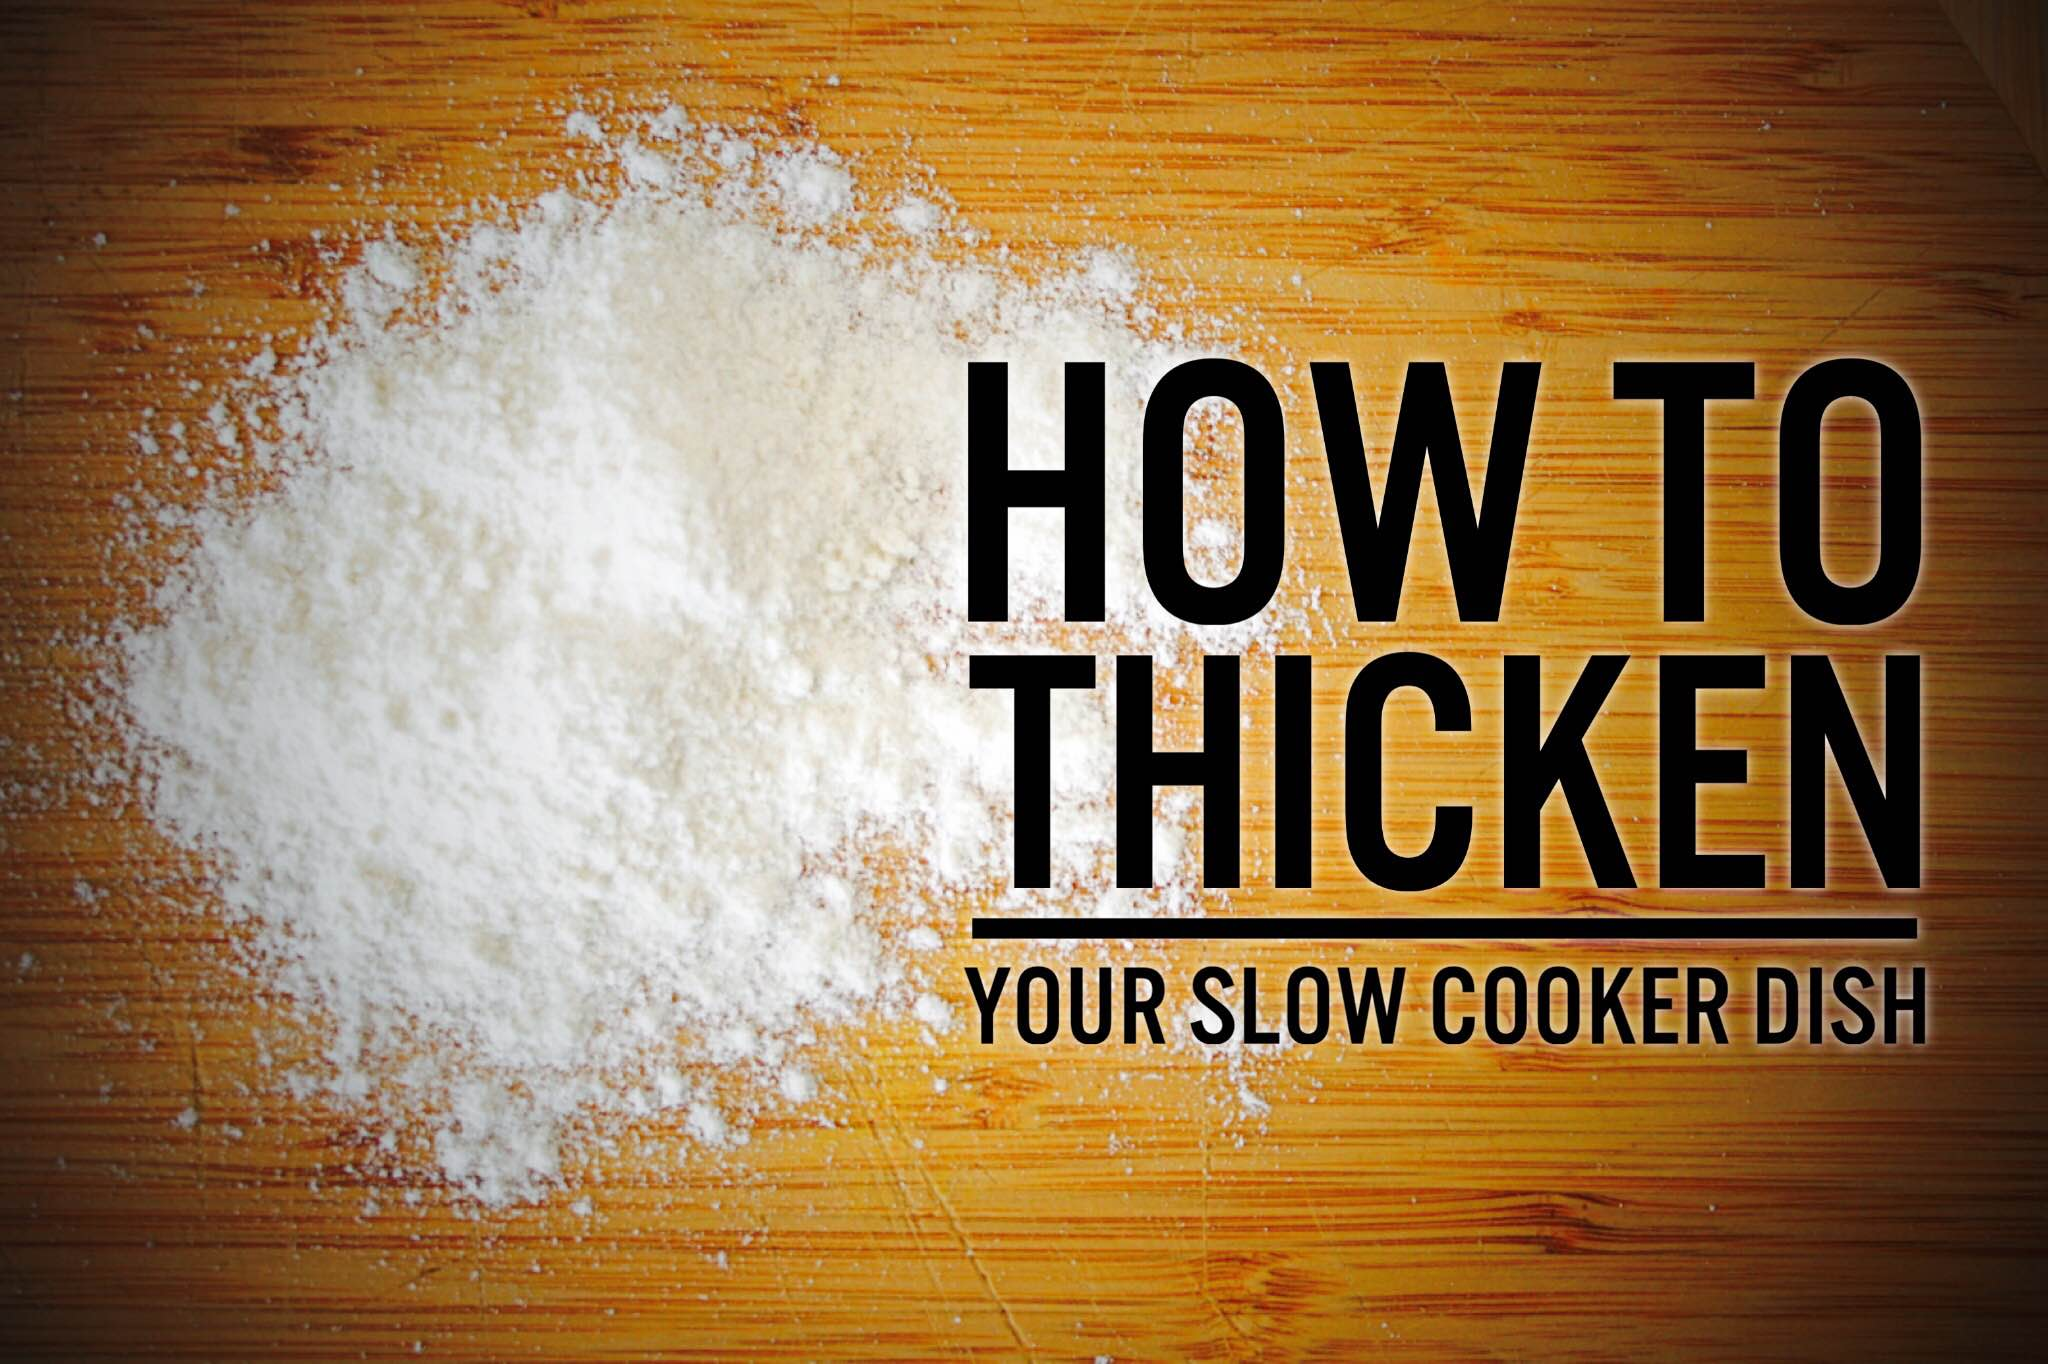 How Do I Thicken My Slow Cooker Dish